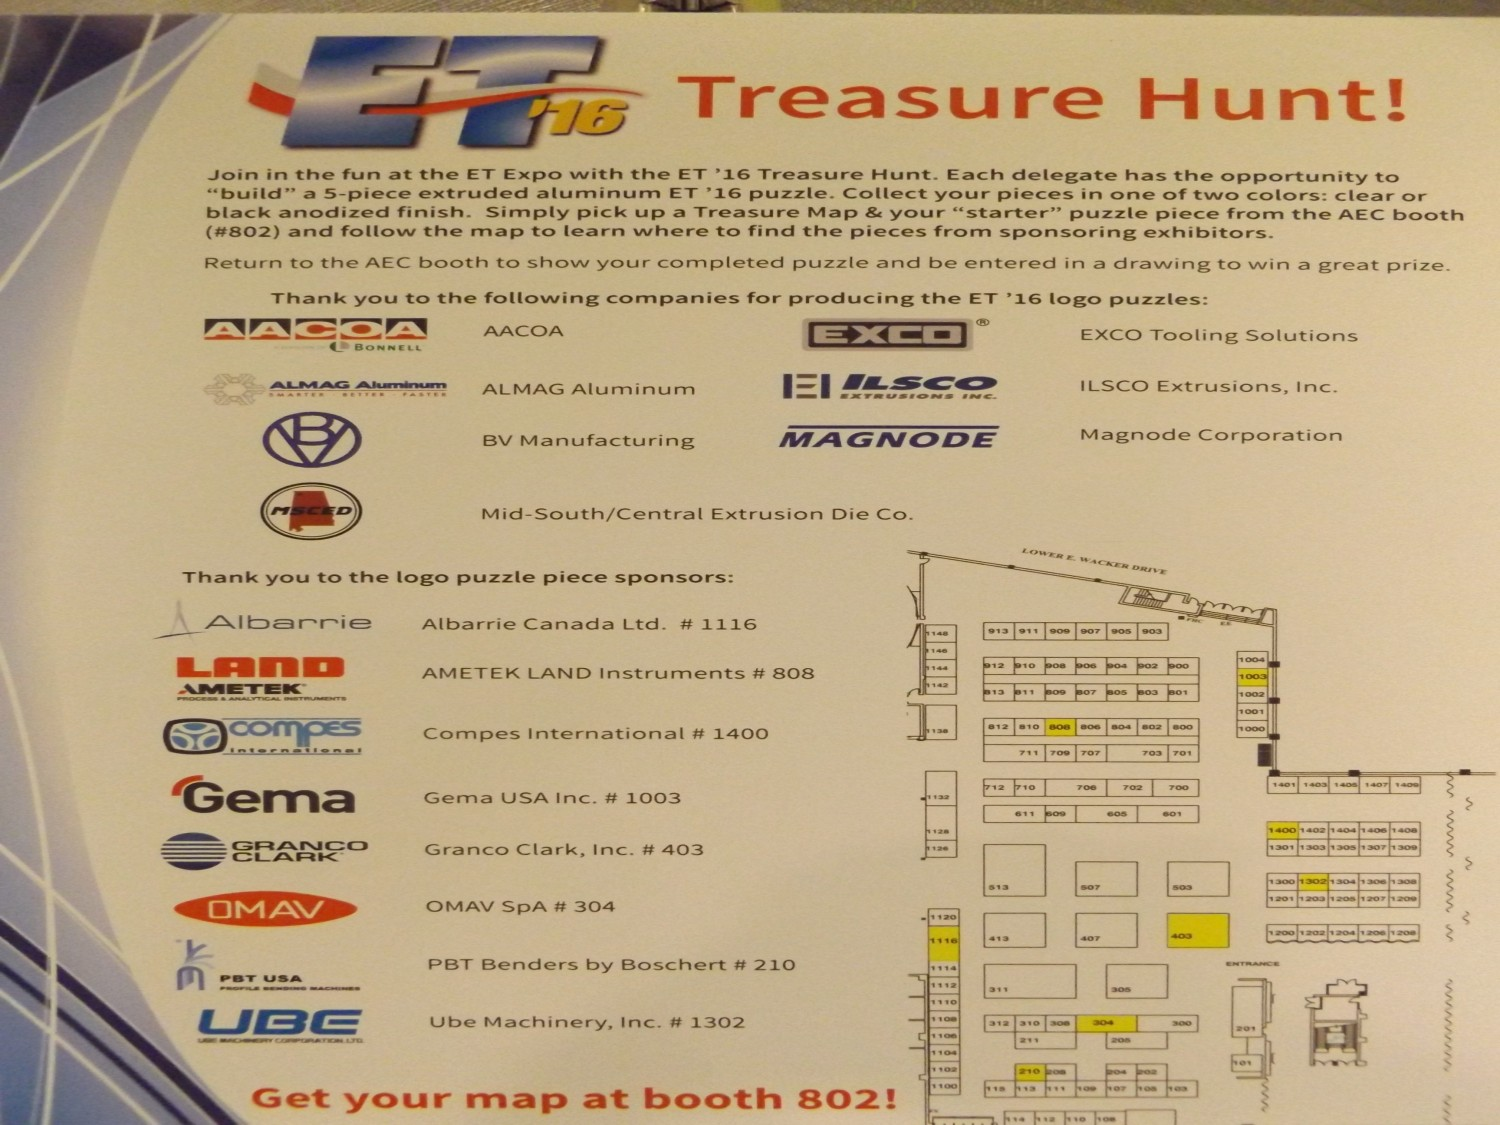 Industrial fabrics, Technology, aluminum extrusion, ET'16, technical felts, Albarrie, treasure hunt, Chicago